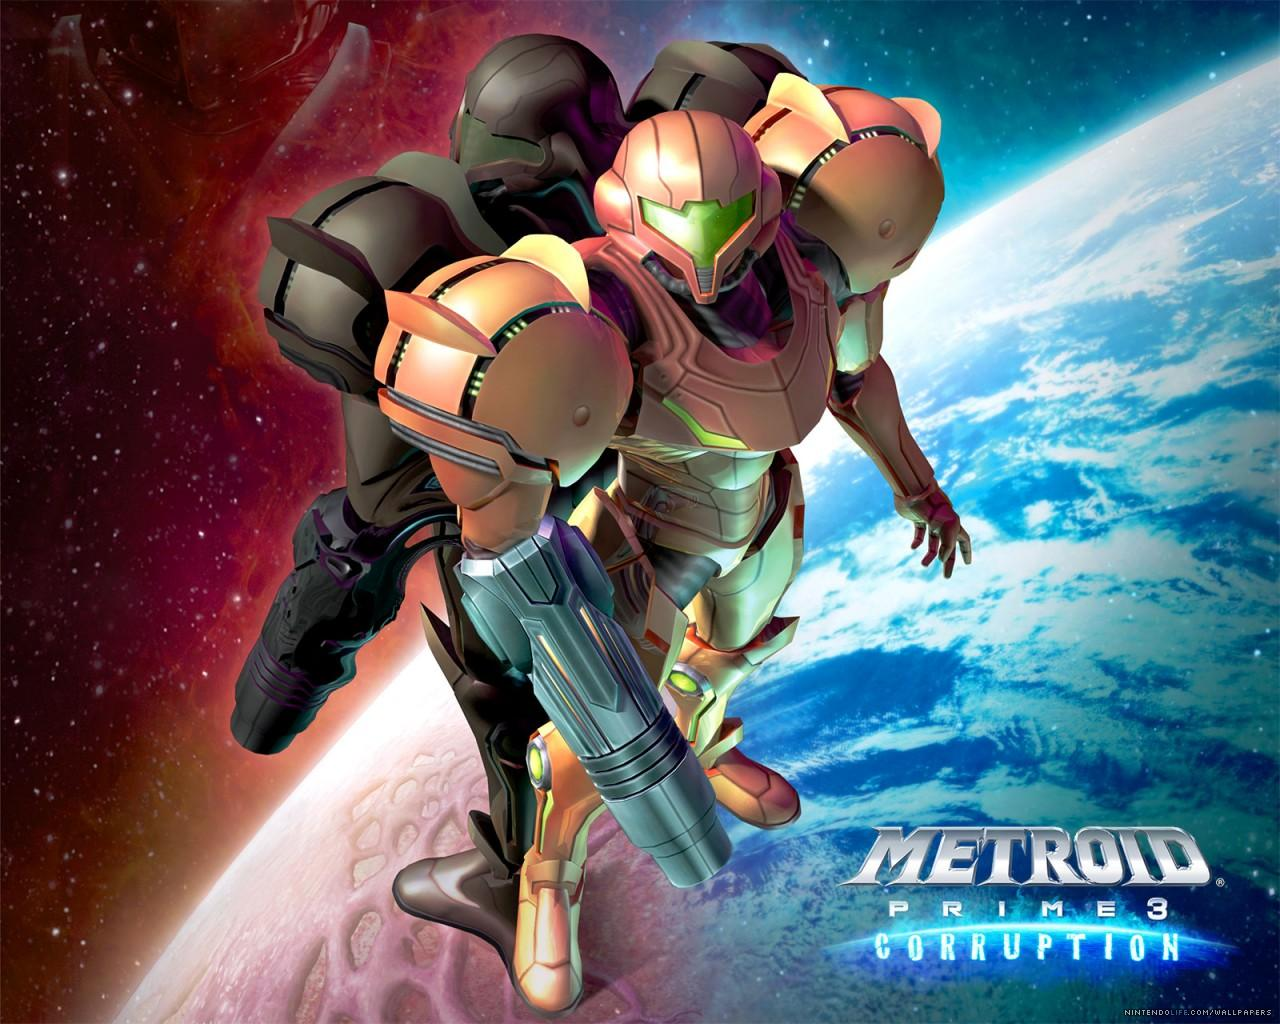 ���� Metroid Prime 3 Corruption 1280x1024